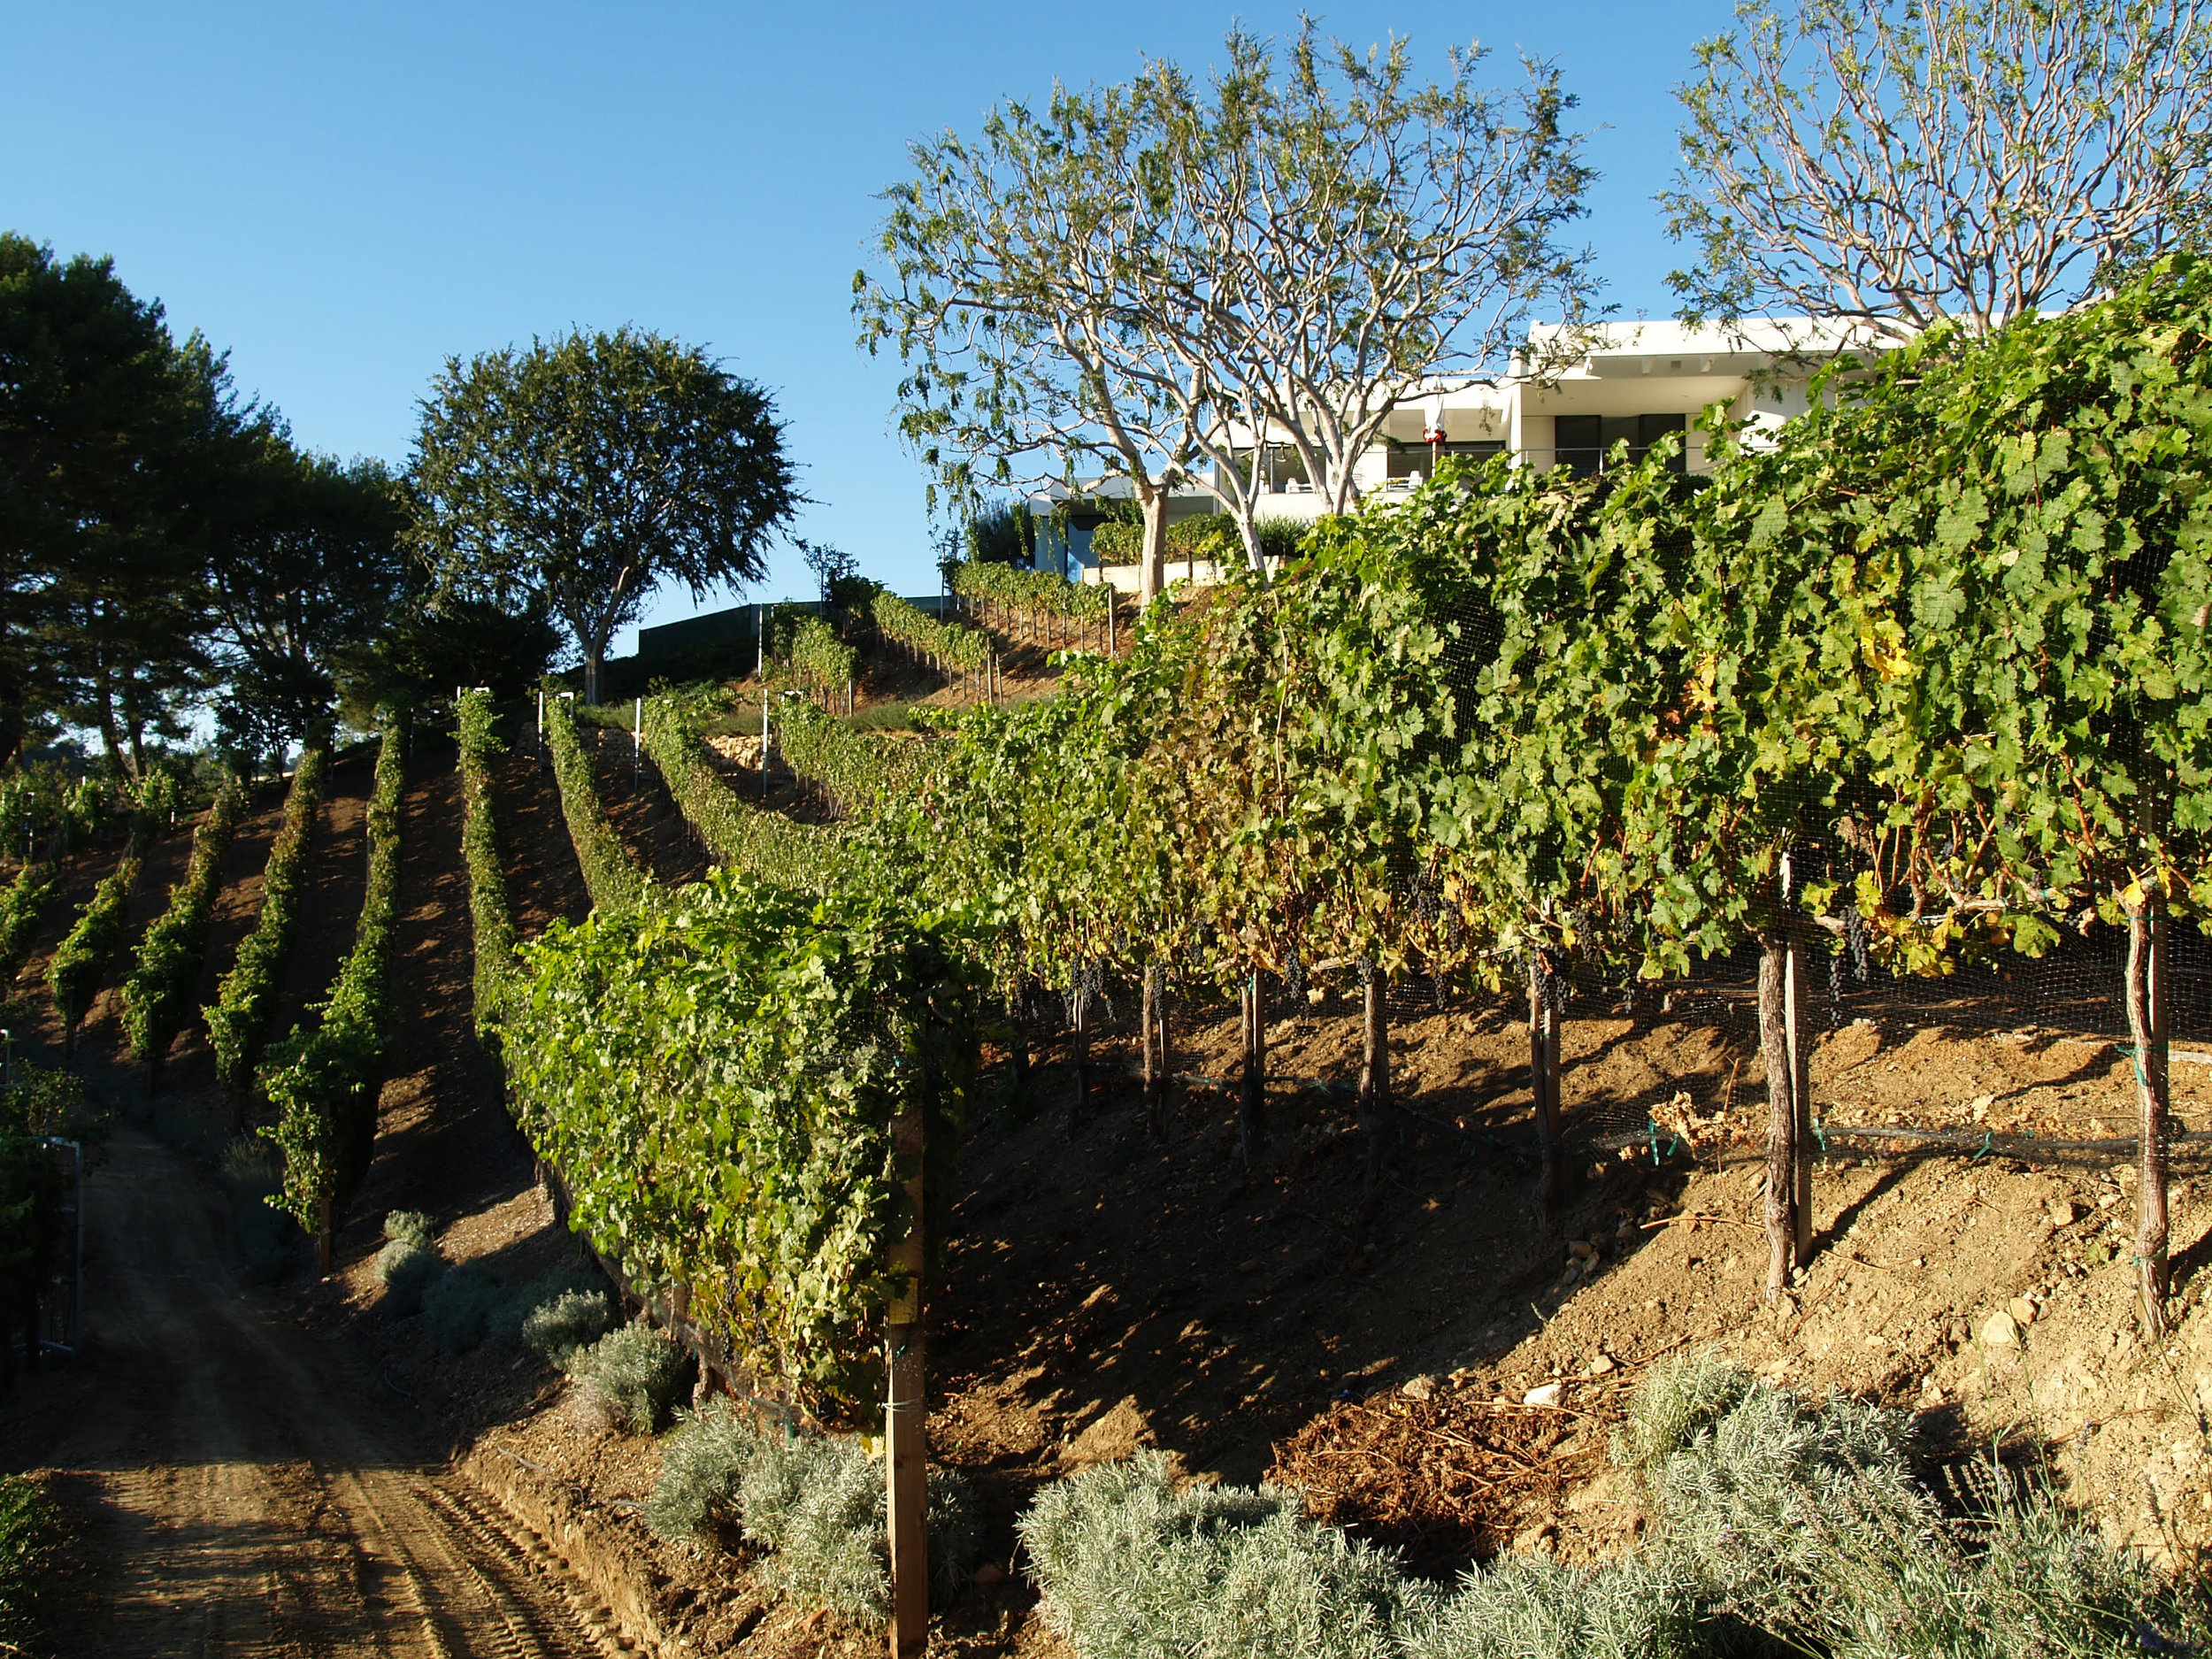 Maguire vineyard with mid-century Quincy Jones house.